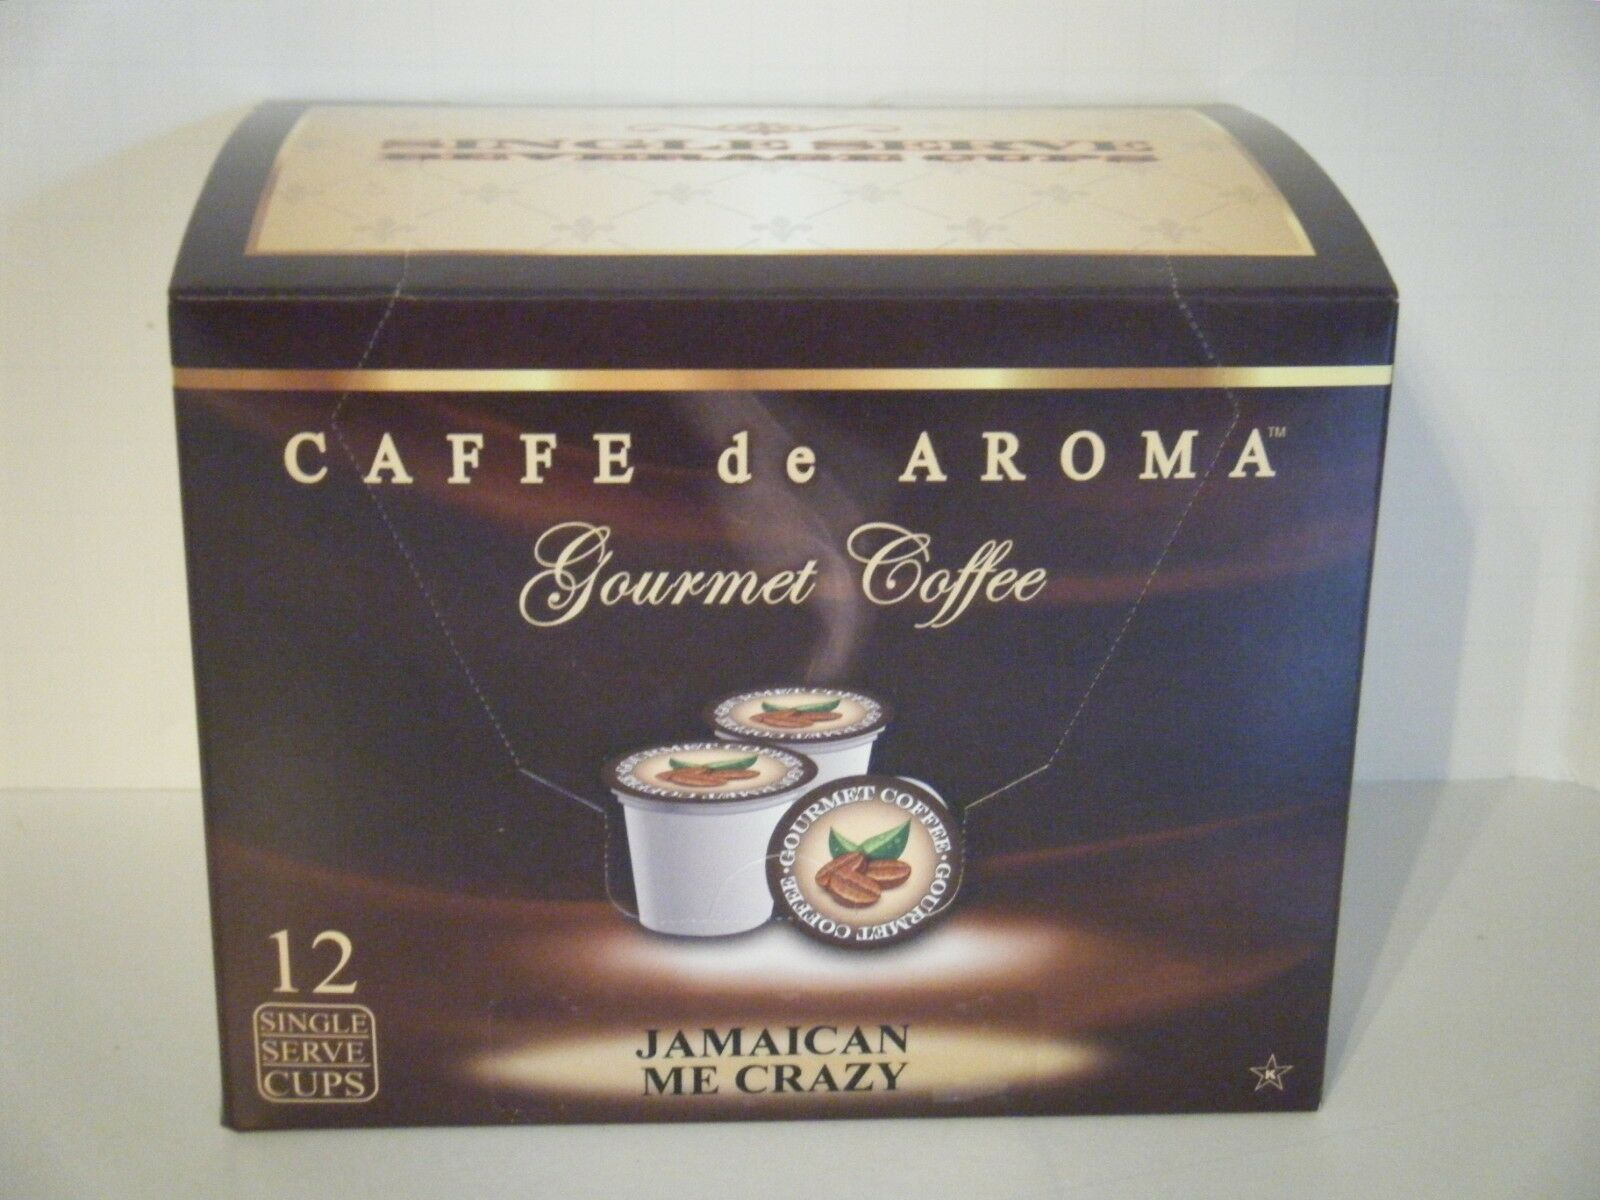 Primary image for Caffe de Aroma Jamaican Me Crazy flavored 12 Single Serve K-Cups OK for 2.0